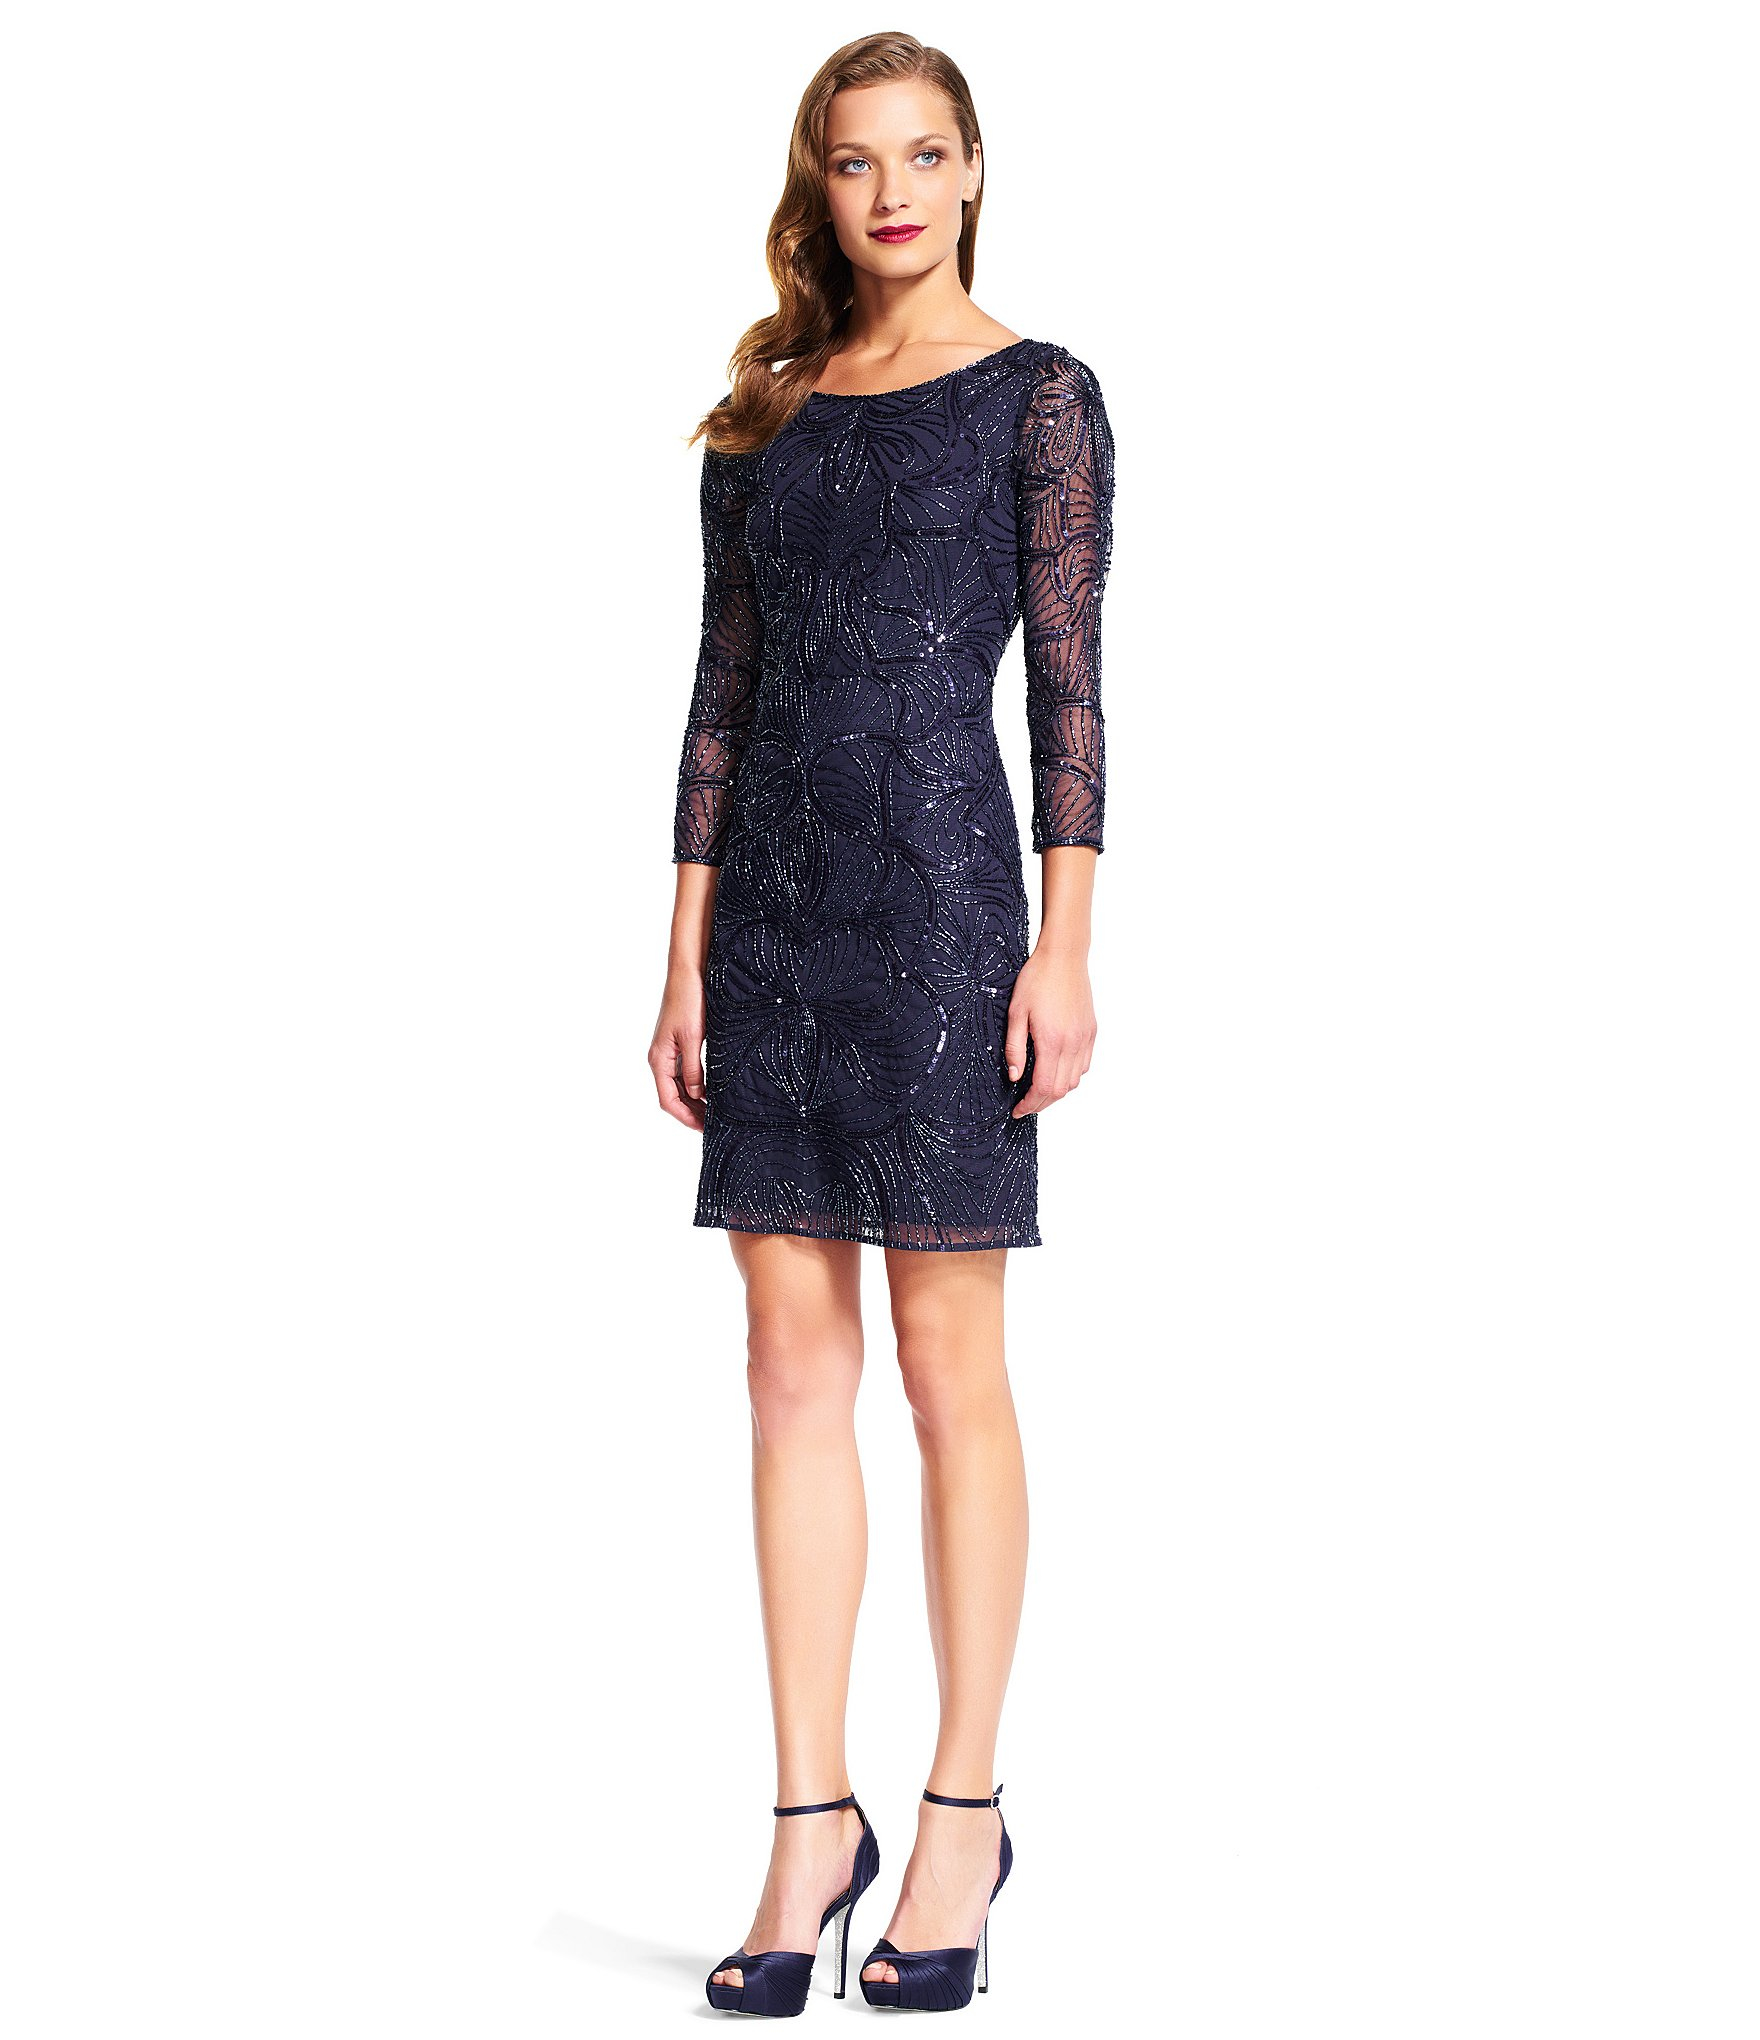 Papell Black Sequin Silk Sheath Dress A Twinkling Layer Of Sequins ...